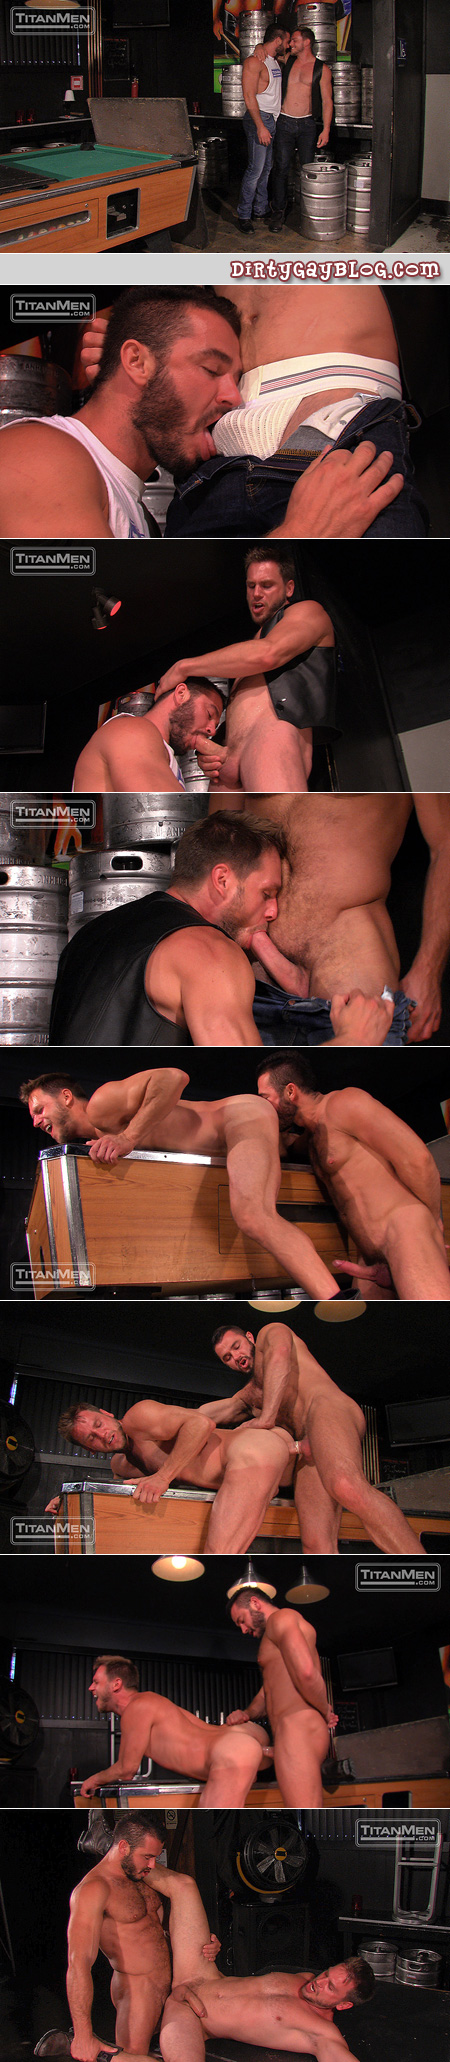 Beefy blonde guy with a beard and old-fashioned jockstrap gets fucked on a pool table in a leather bar.